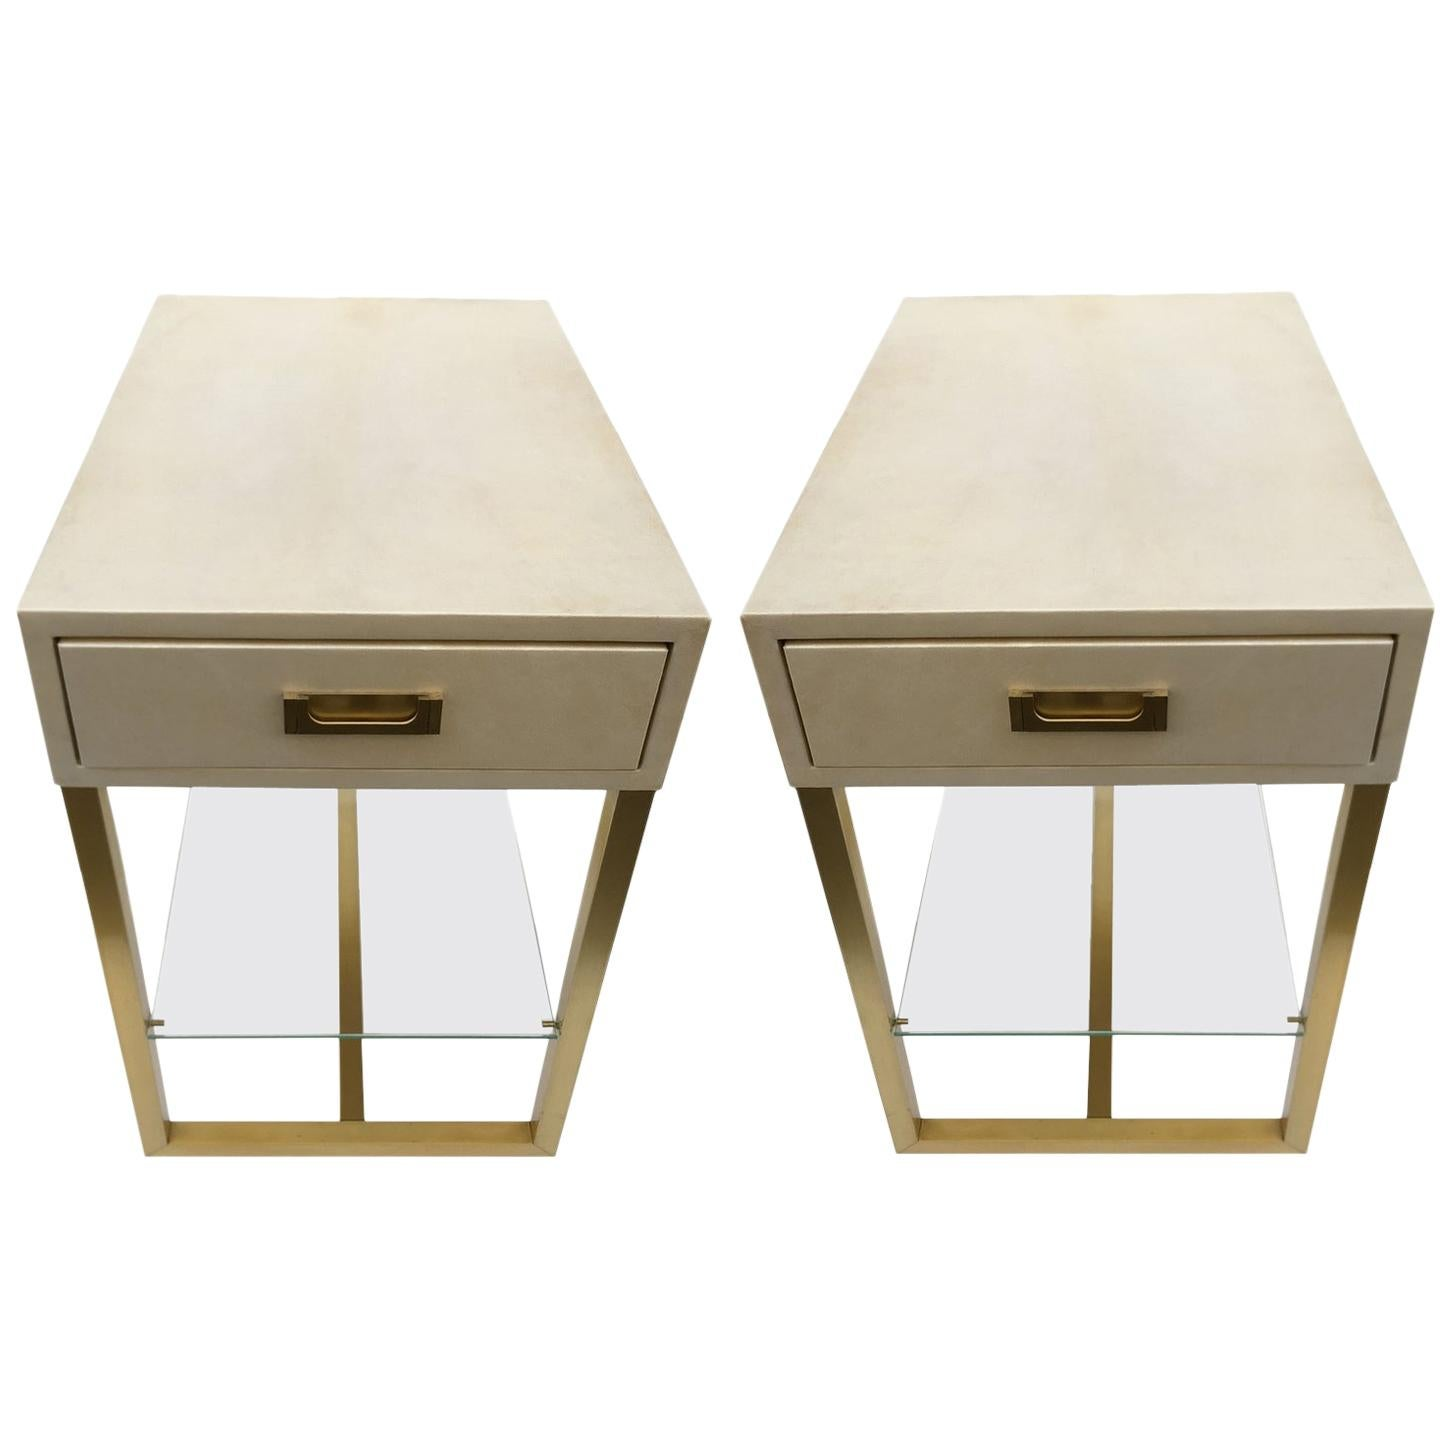 Pair of End Tables in Parchment and Patinated Brass, Maison Jansen, 1970